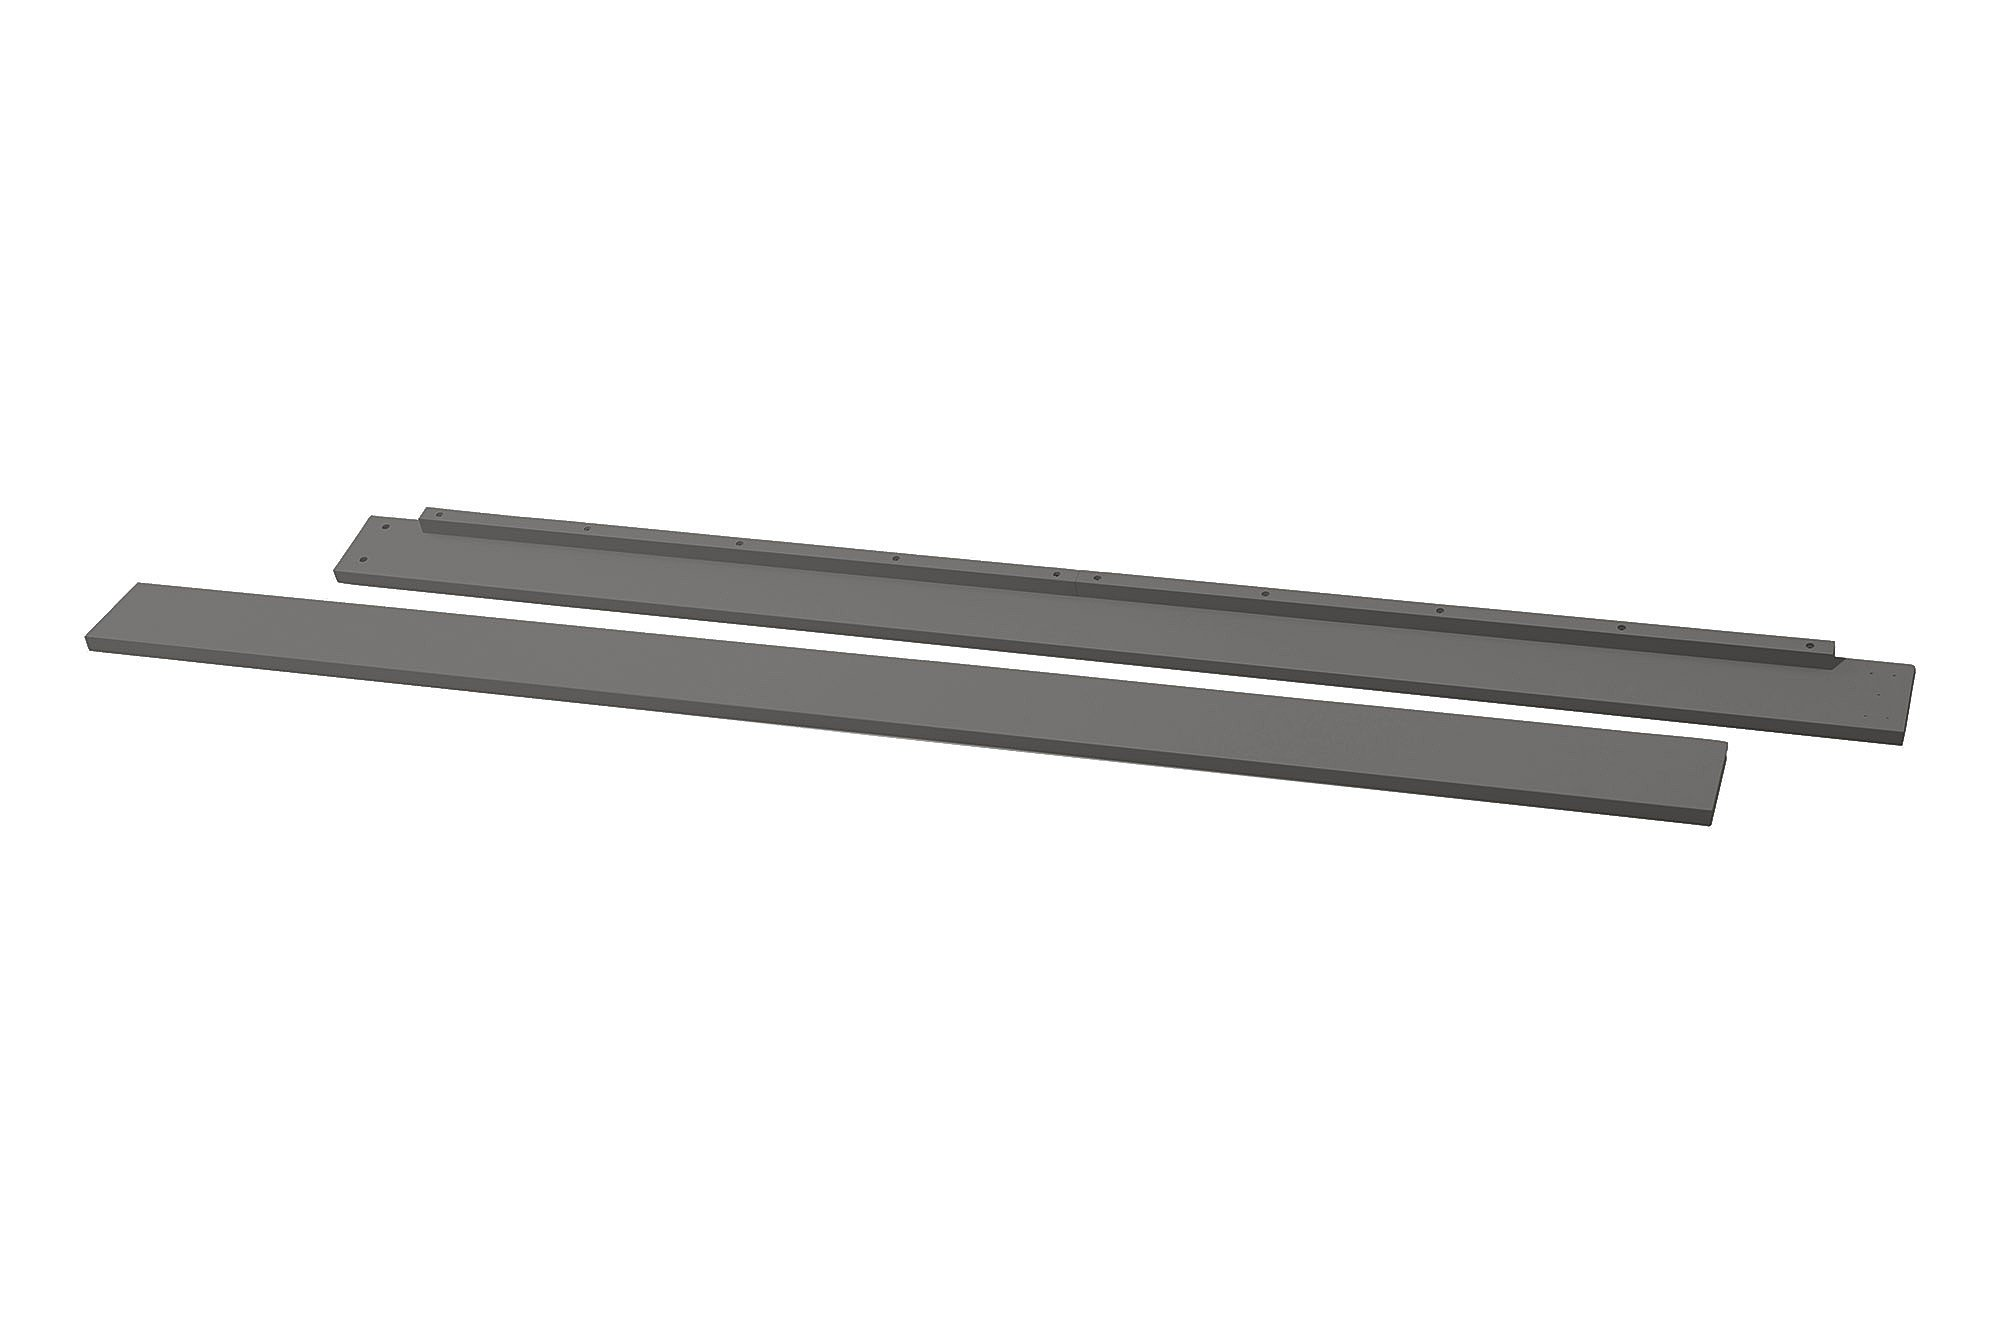 Full Size Conversion Kit Bed Rails for Million Dollar Baby Ashbury, Etienne, Foothill, Louis & Wembley Cribs - Manor Grey/Slate